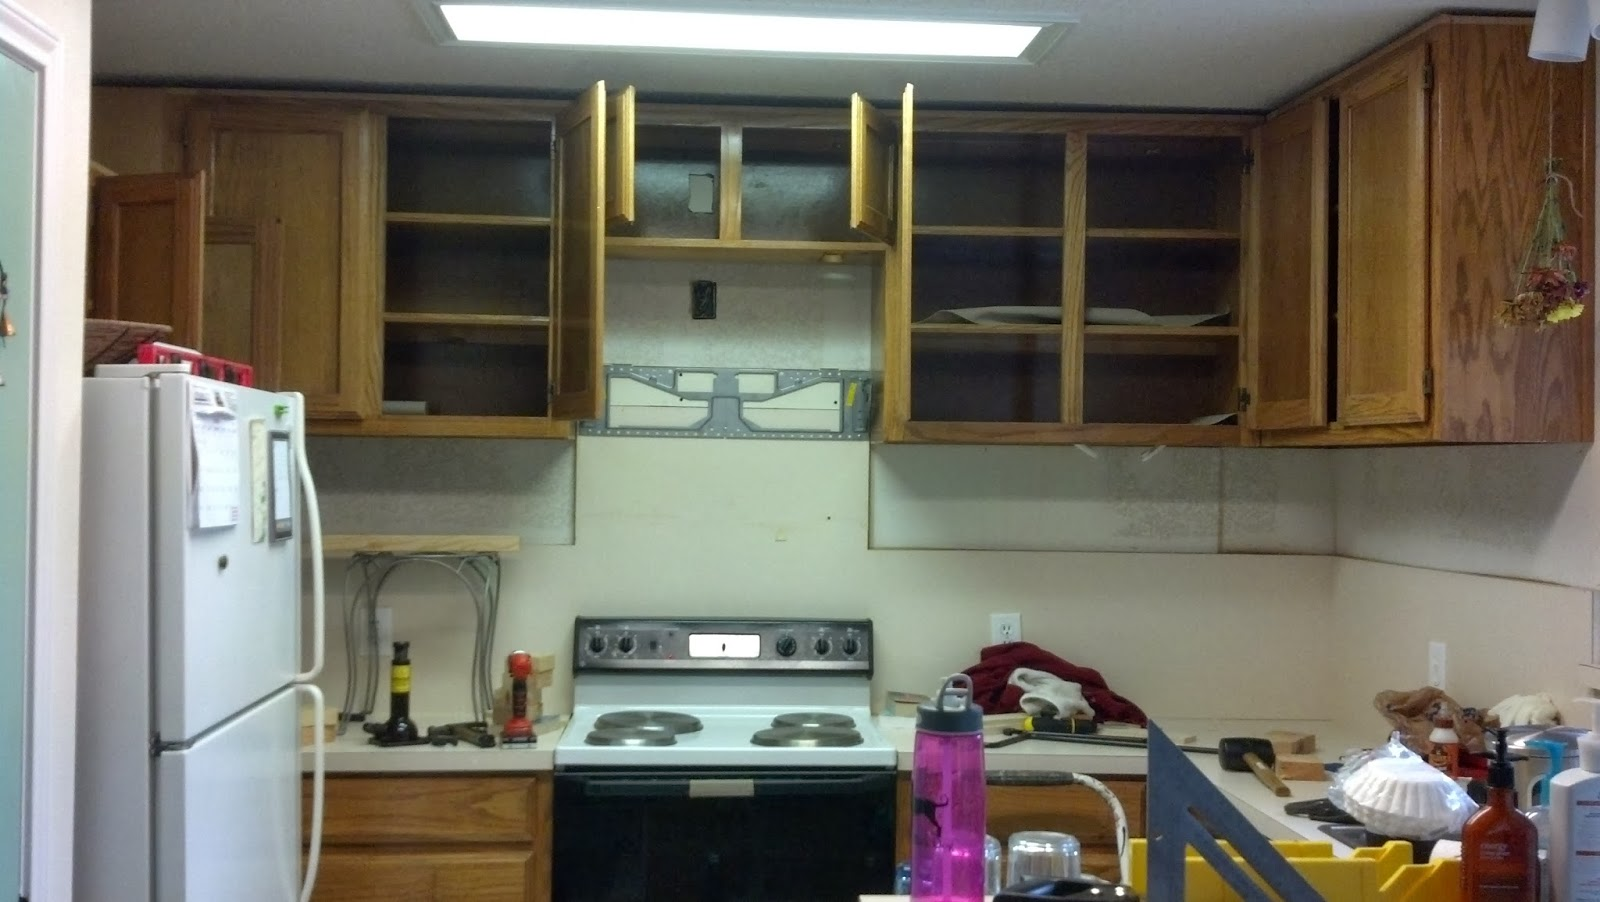 Fix Lovely How to raise your kitchen cabinets